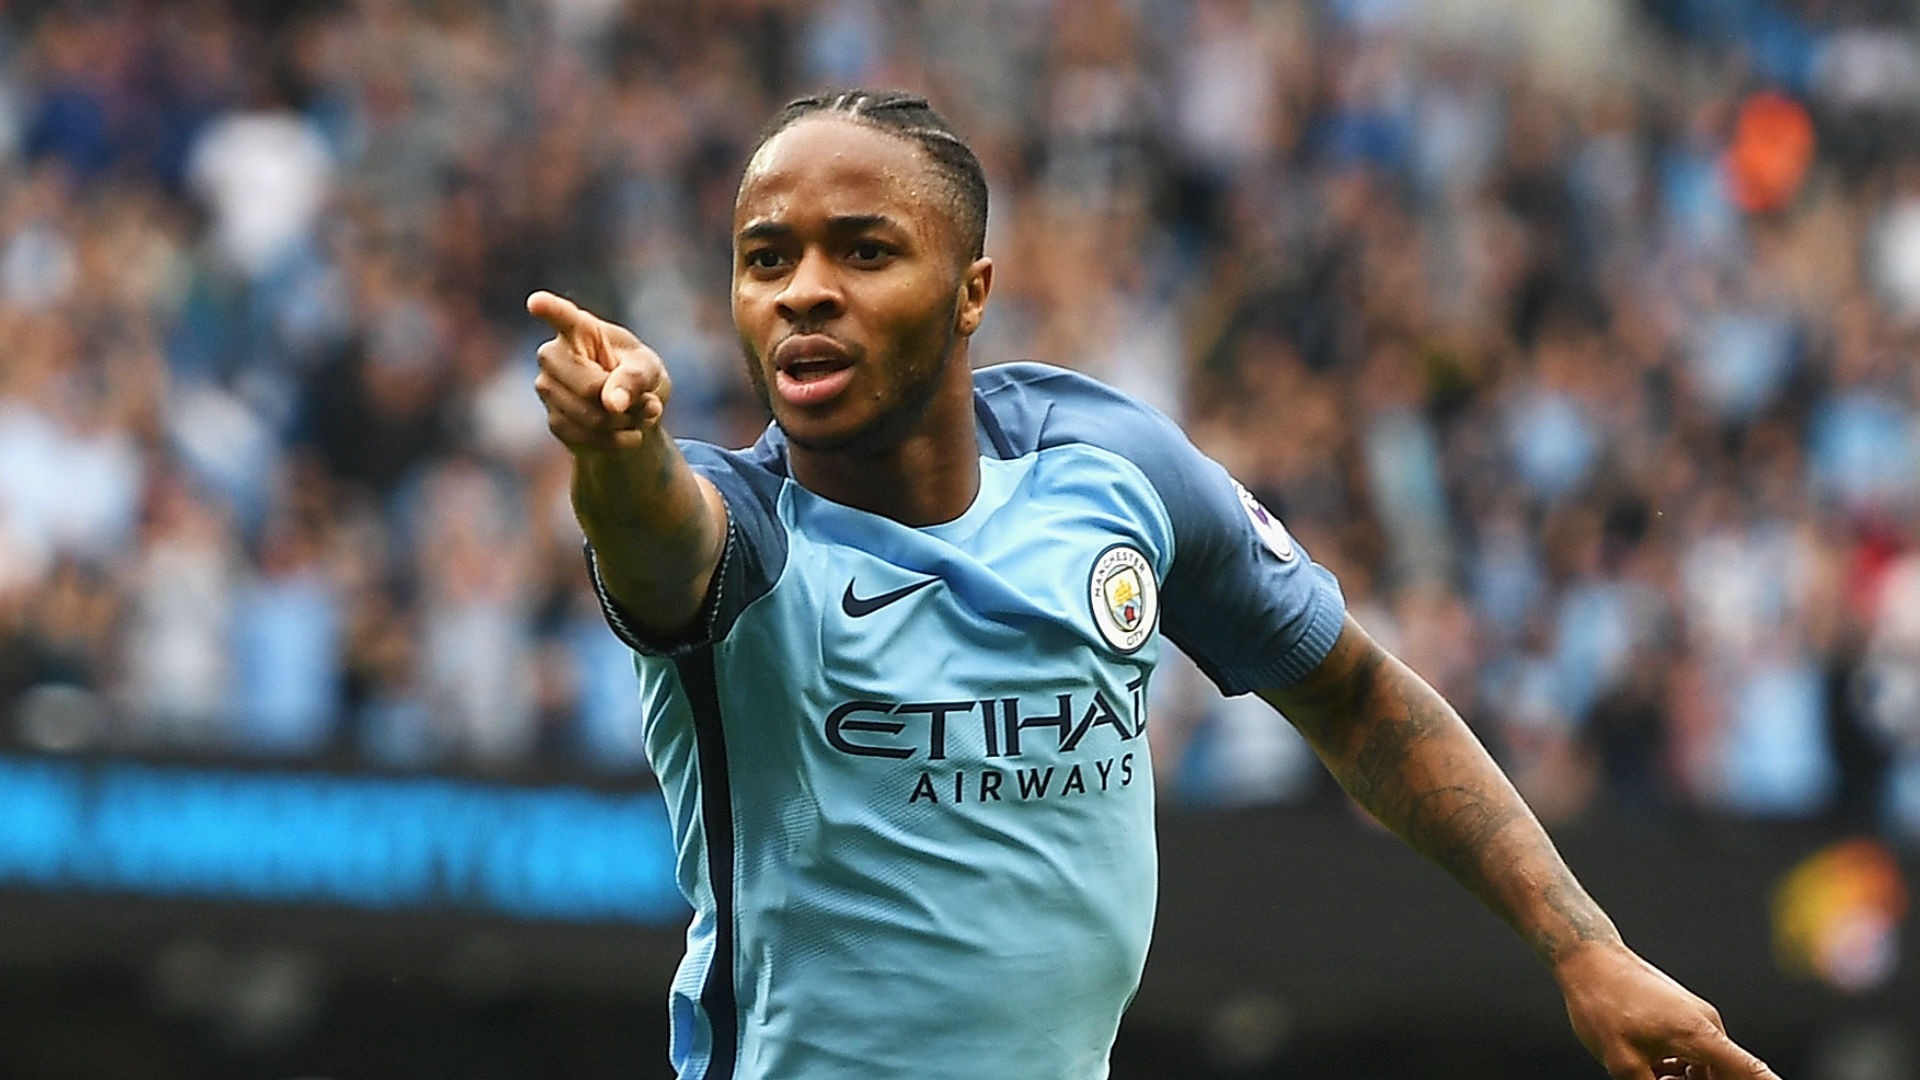 Man arrested over alleged hate crime on Man City's Sterling